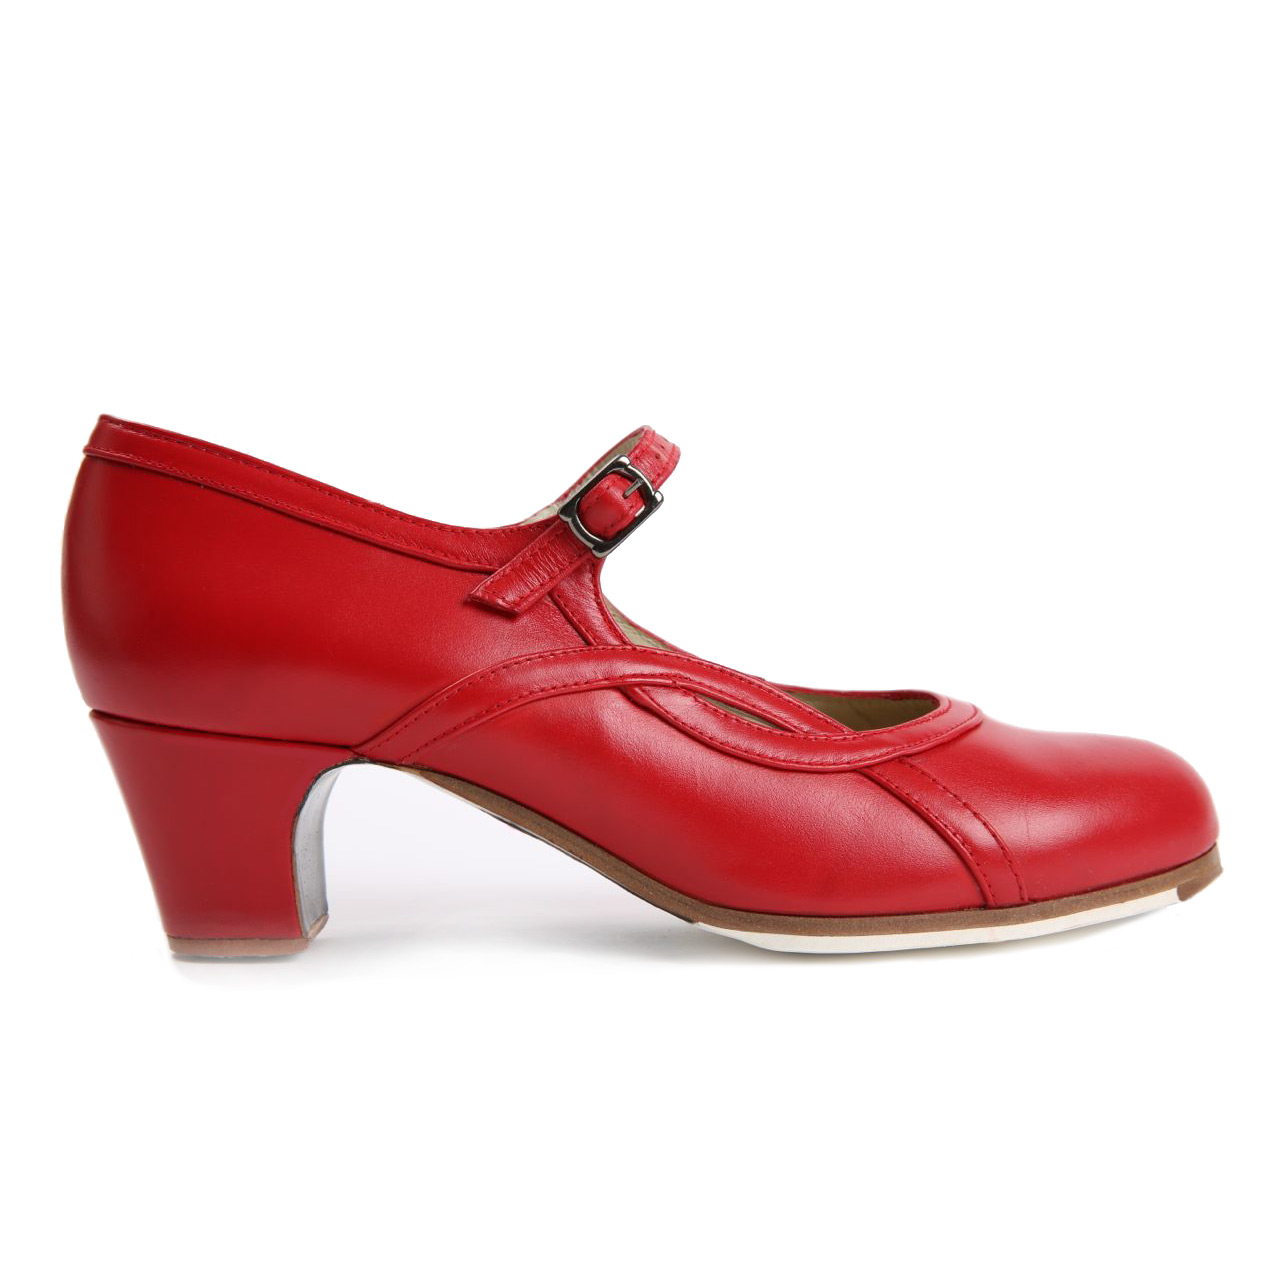 Flamenco dance Shoe Arco I Red